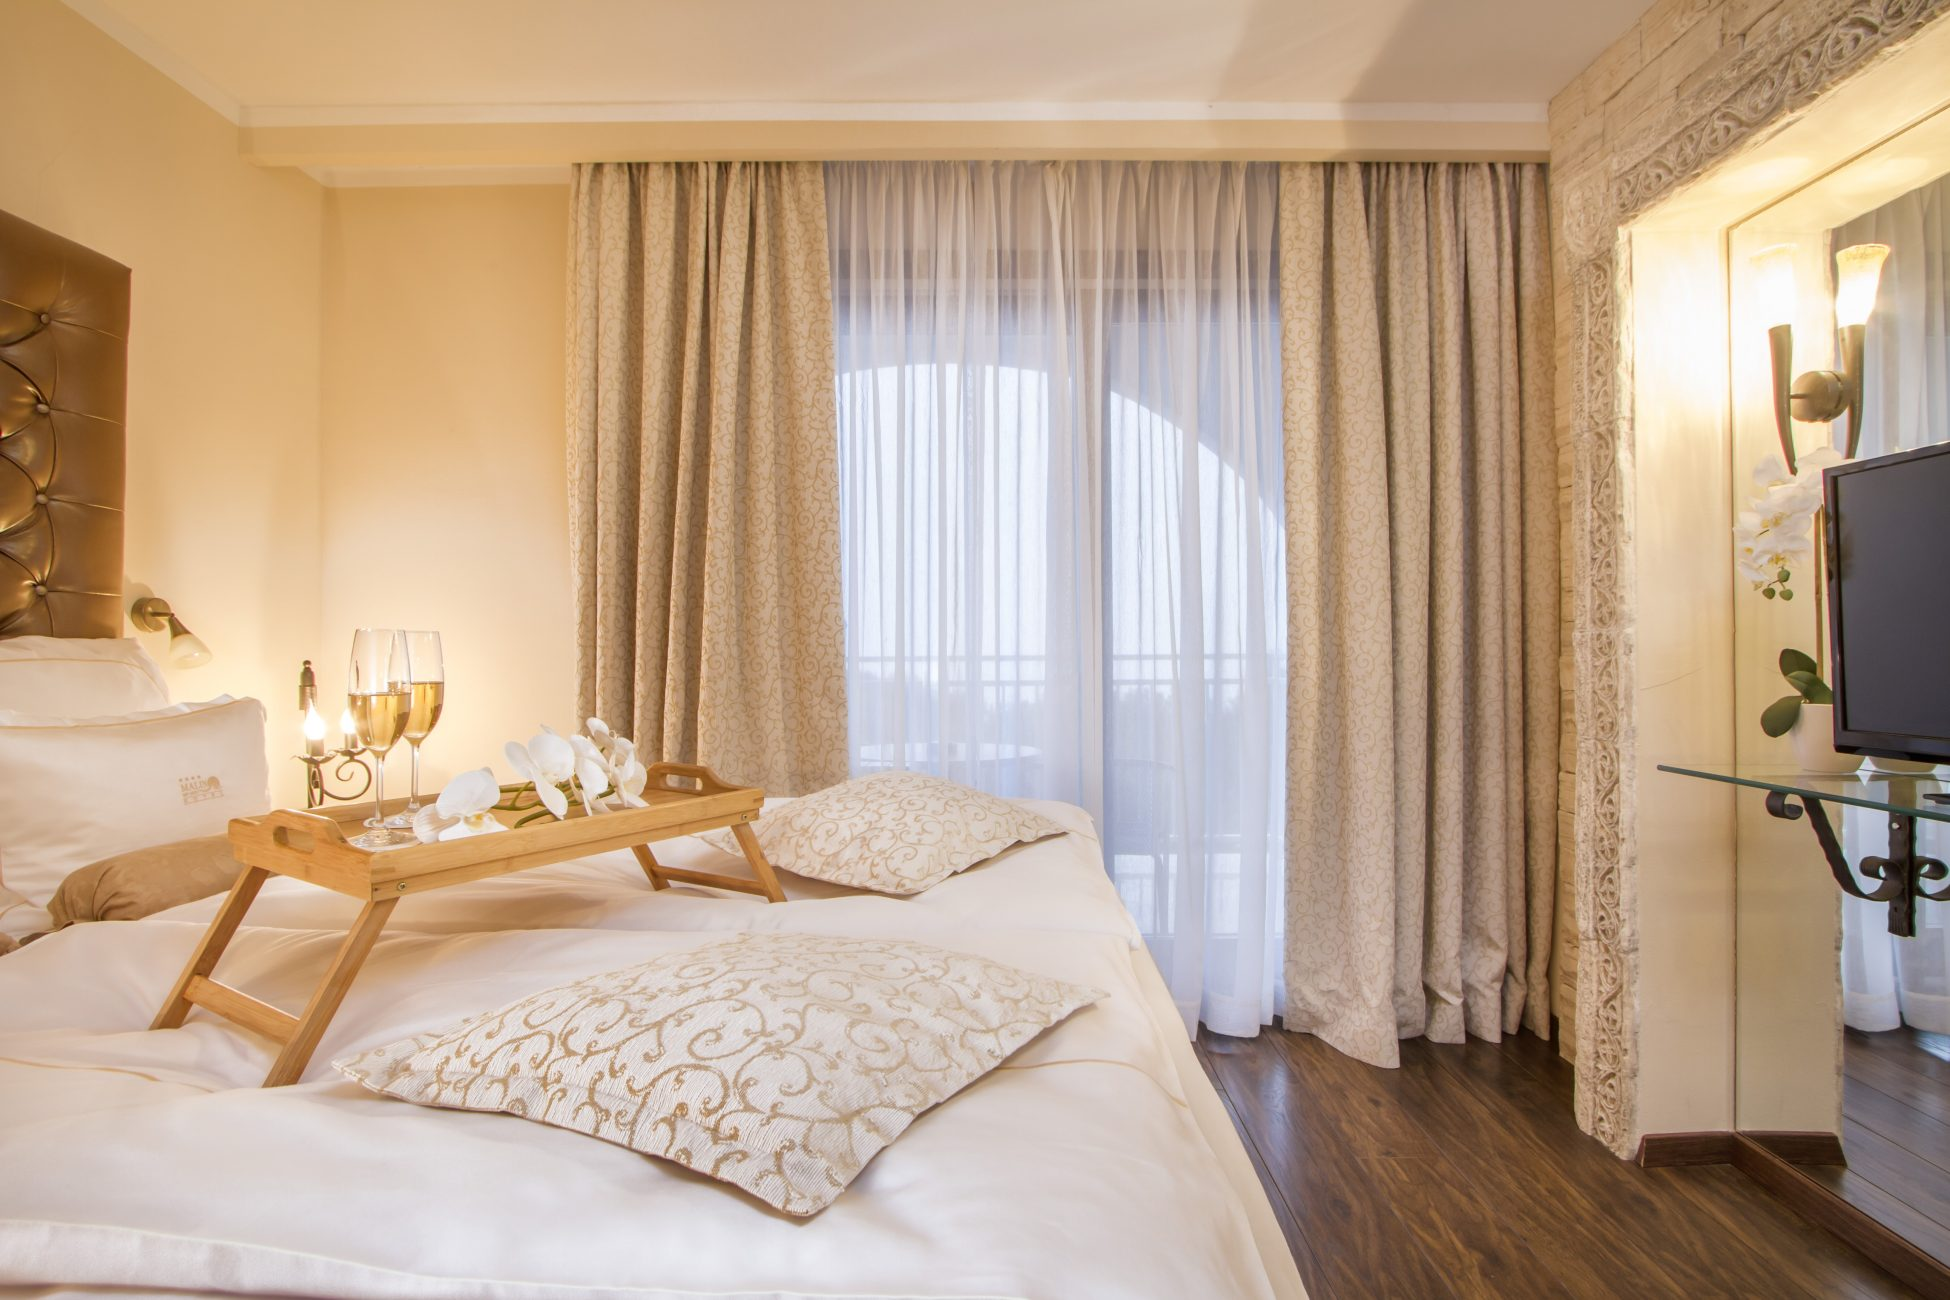 Frangipane Suite of Hotel Malin